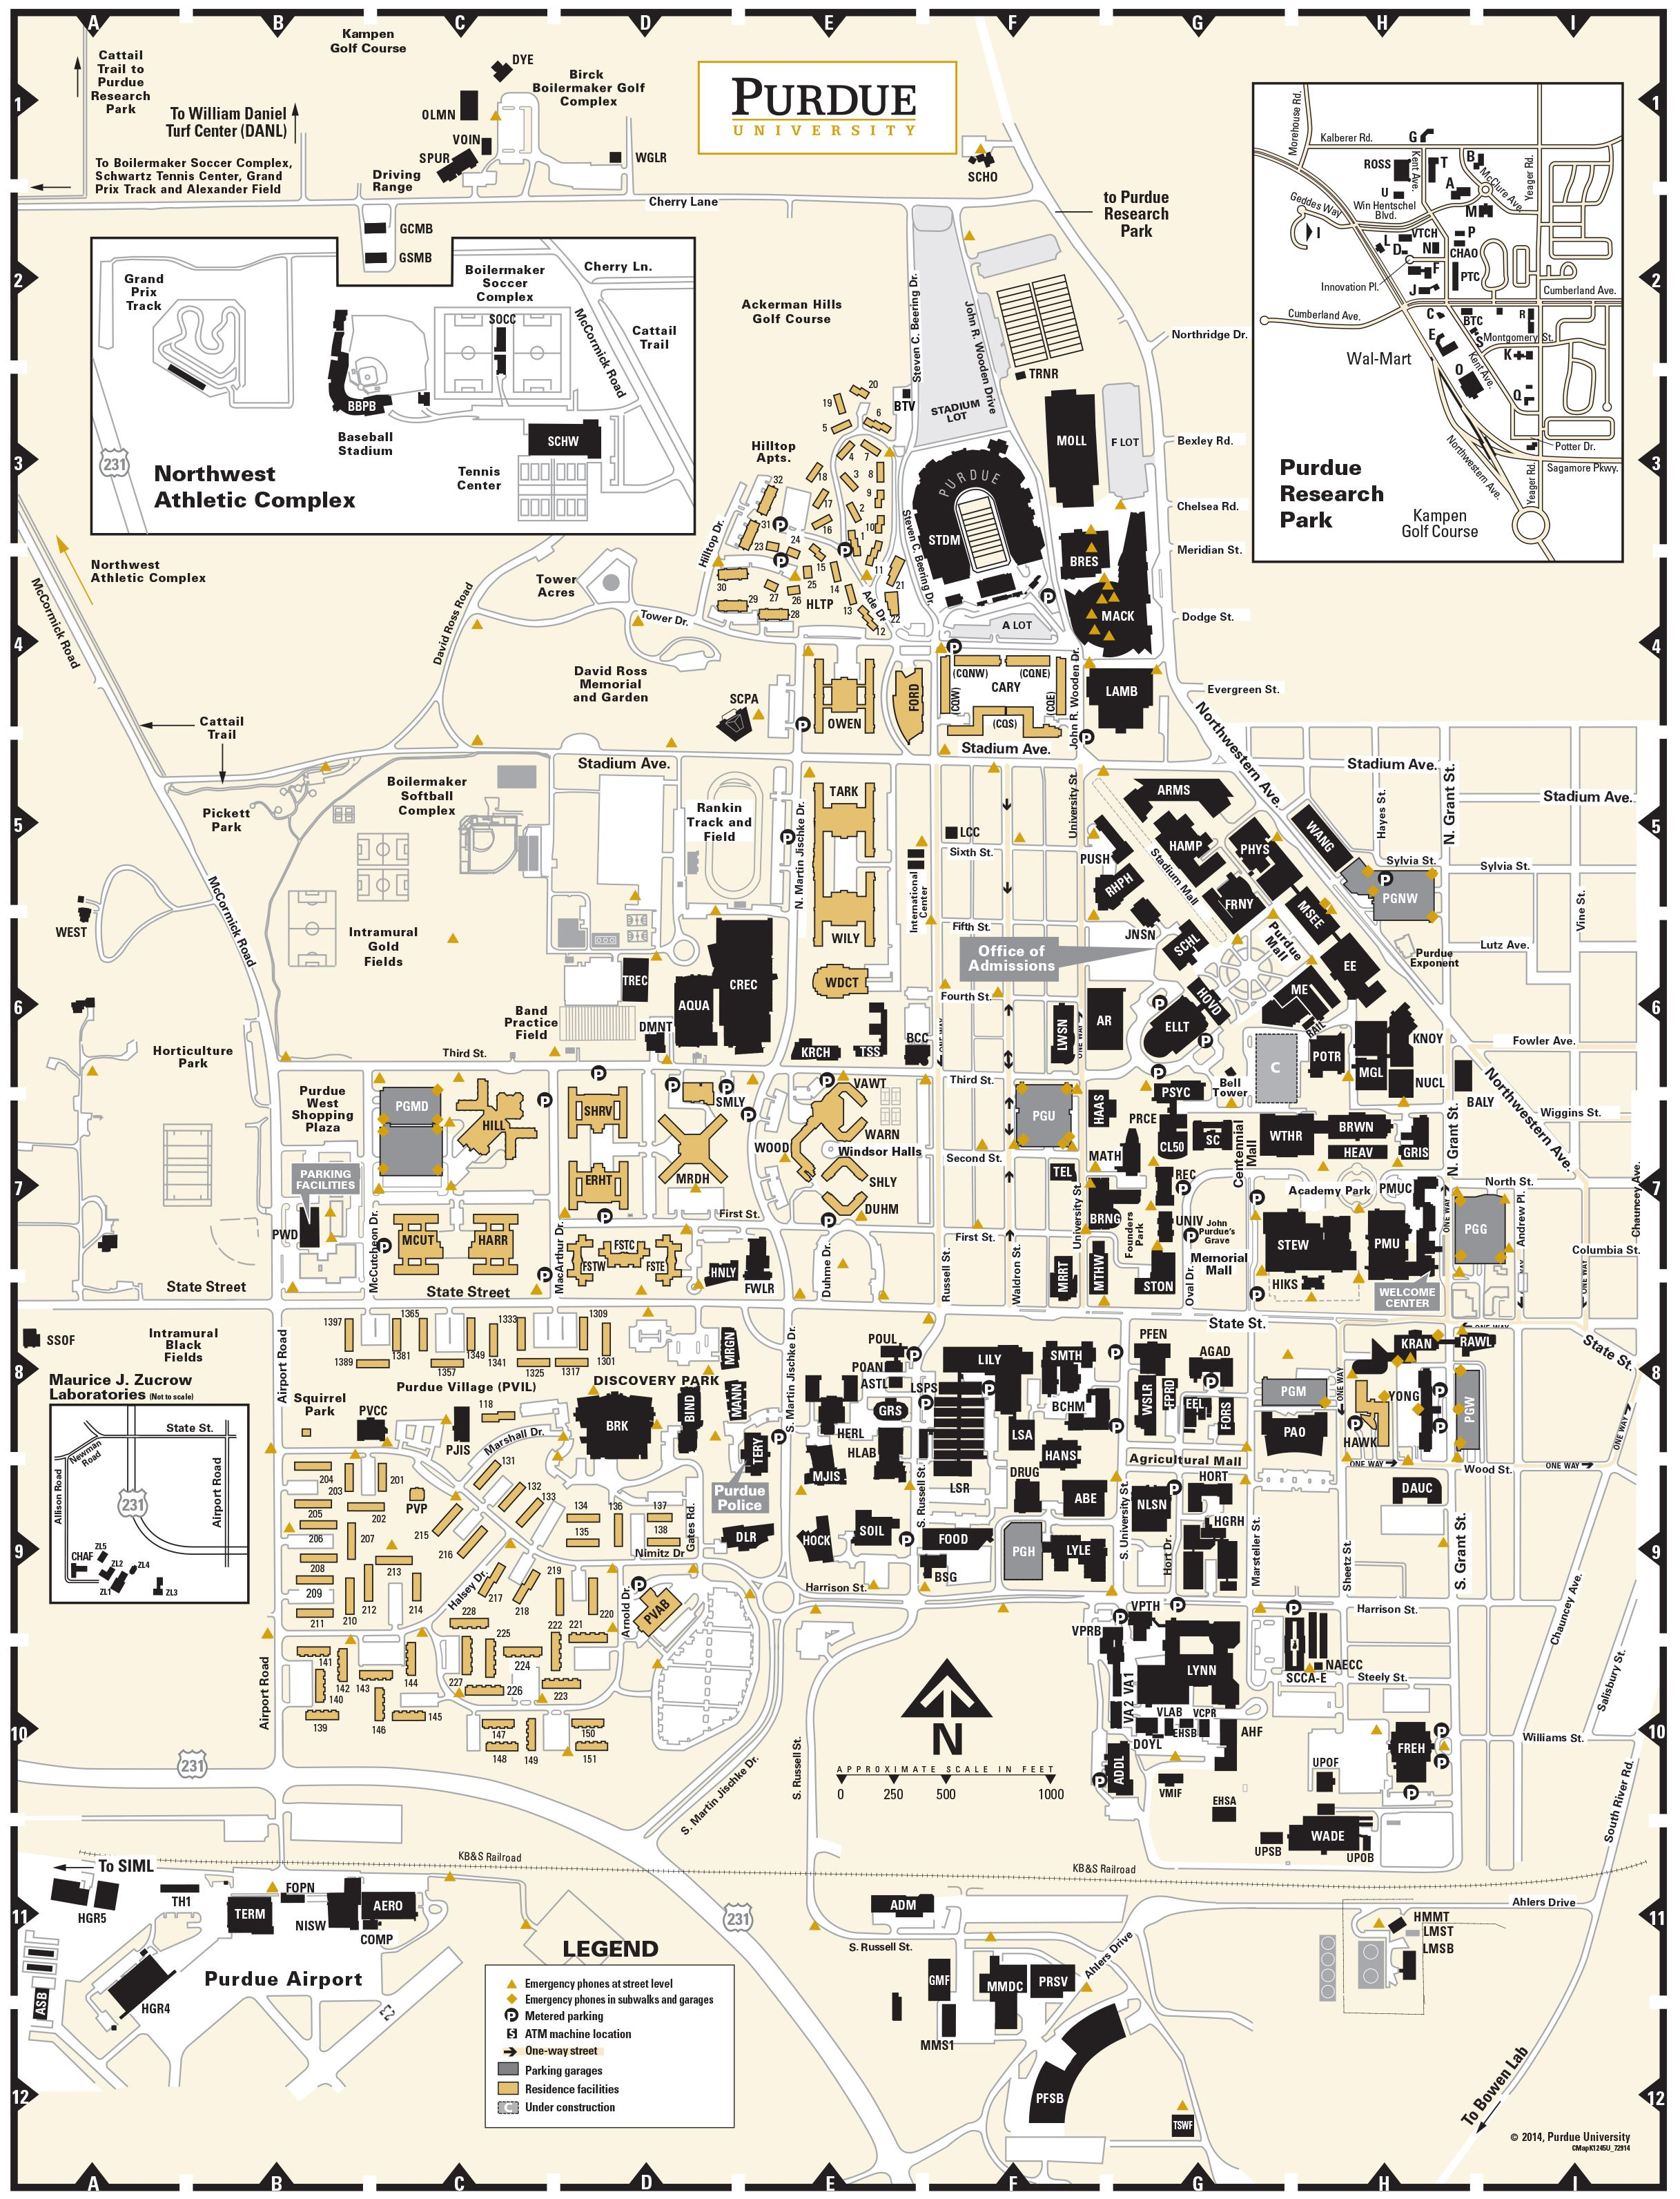 Roche Indianapolis Campus Map.Purdue University Campus Map Circa 2014 Pg 2 Purdue Pinterest